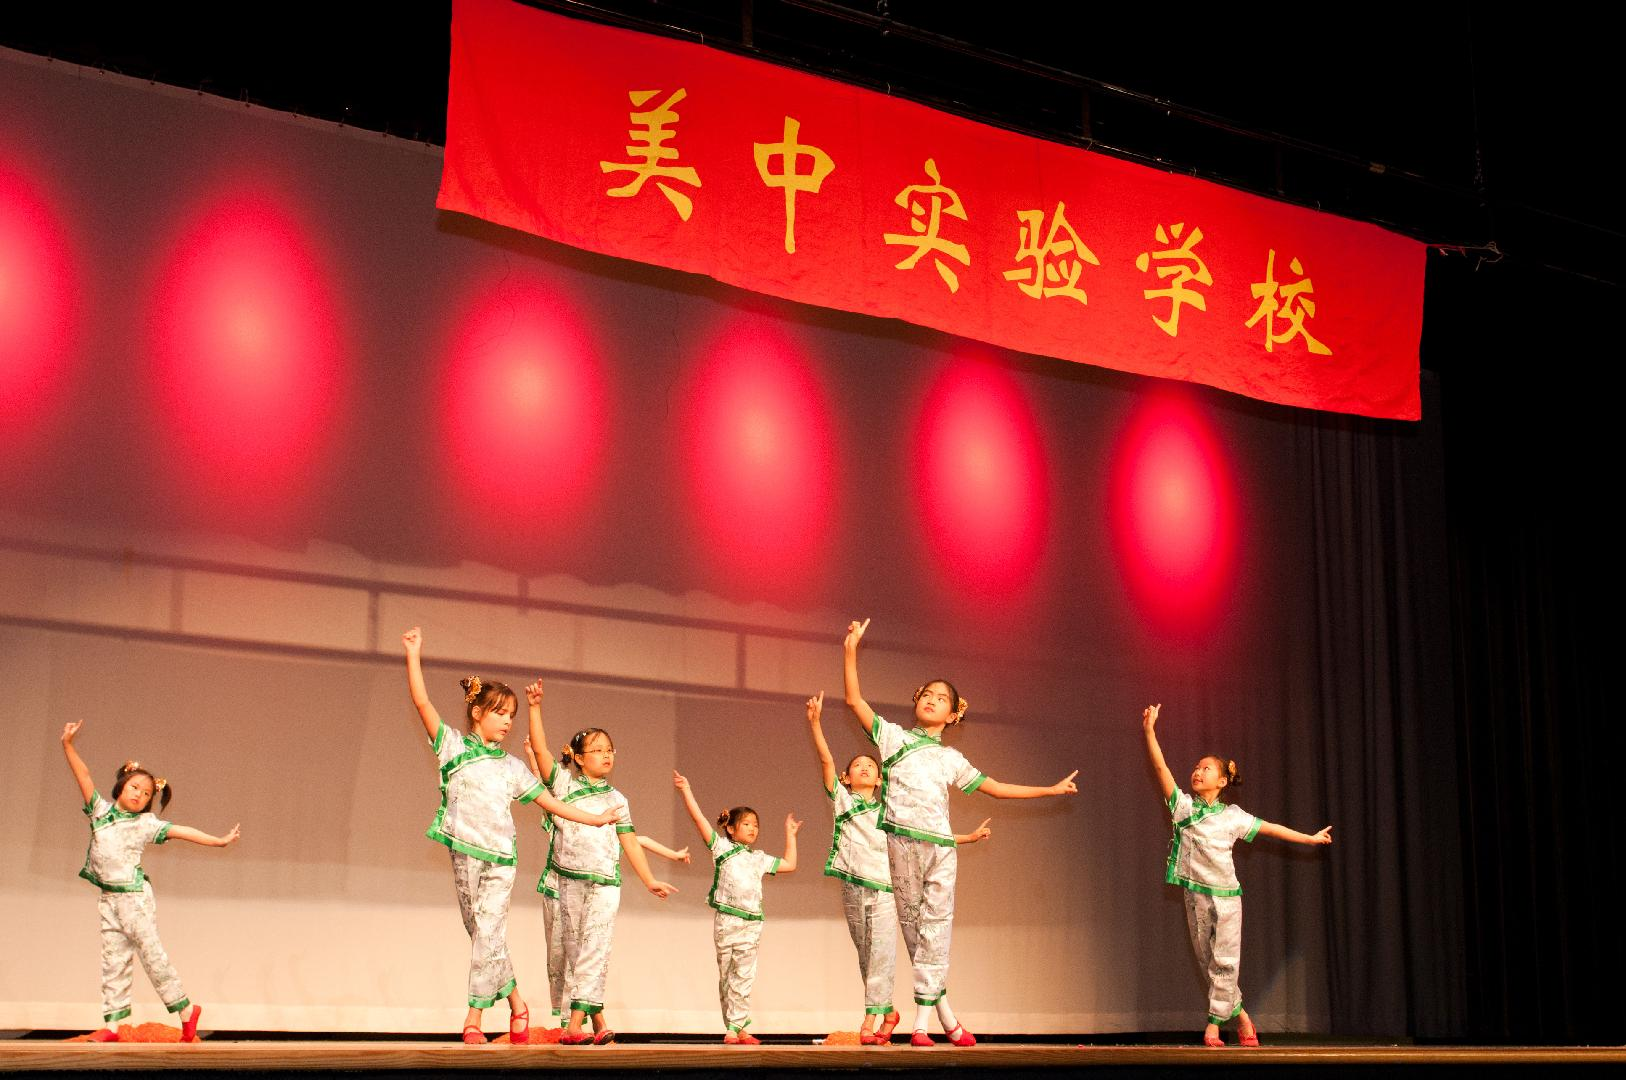 American Chinese School, Rockville